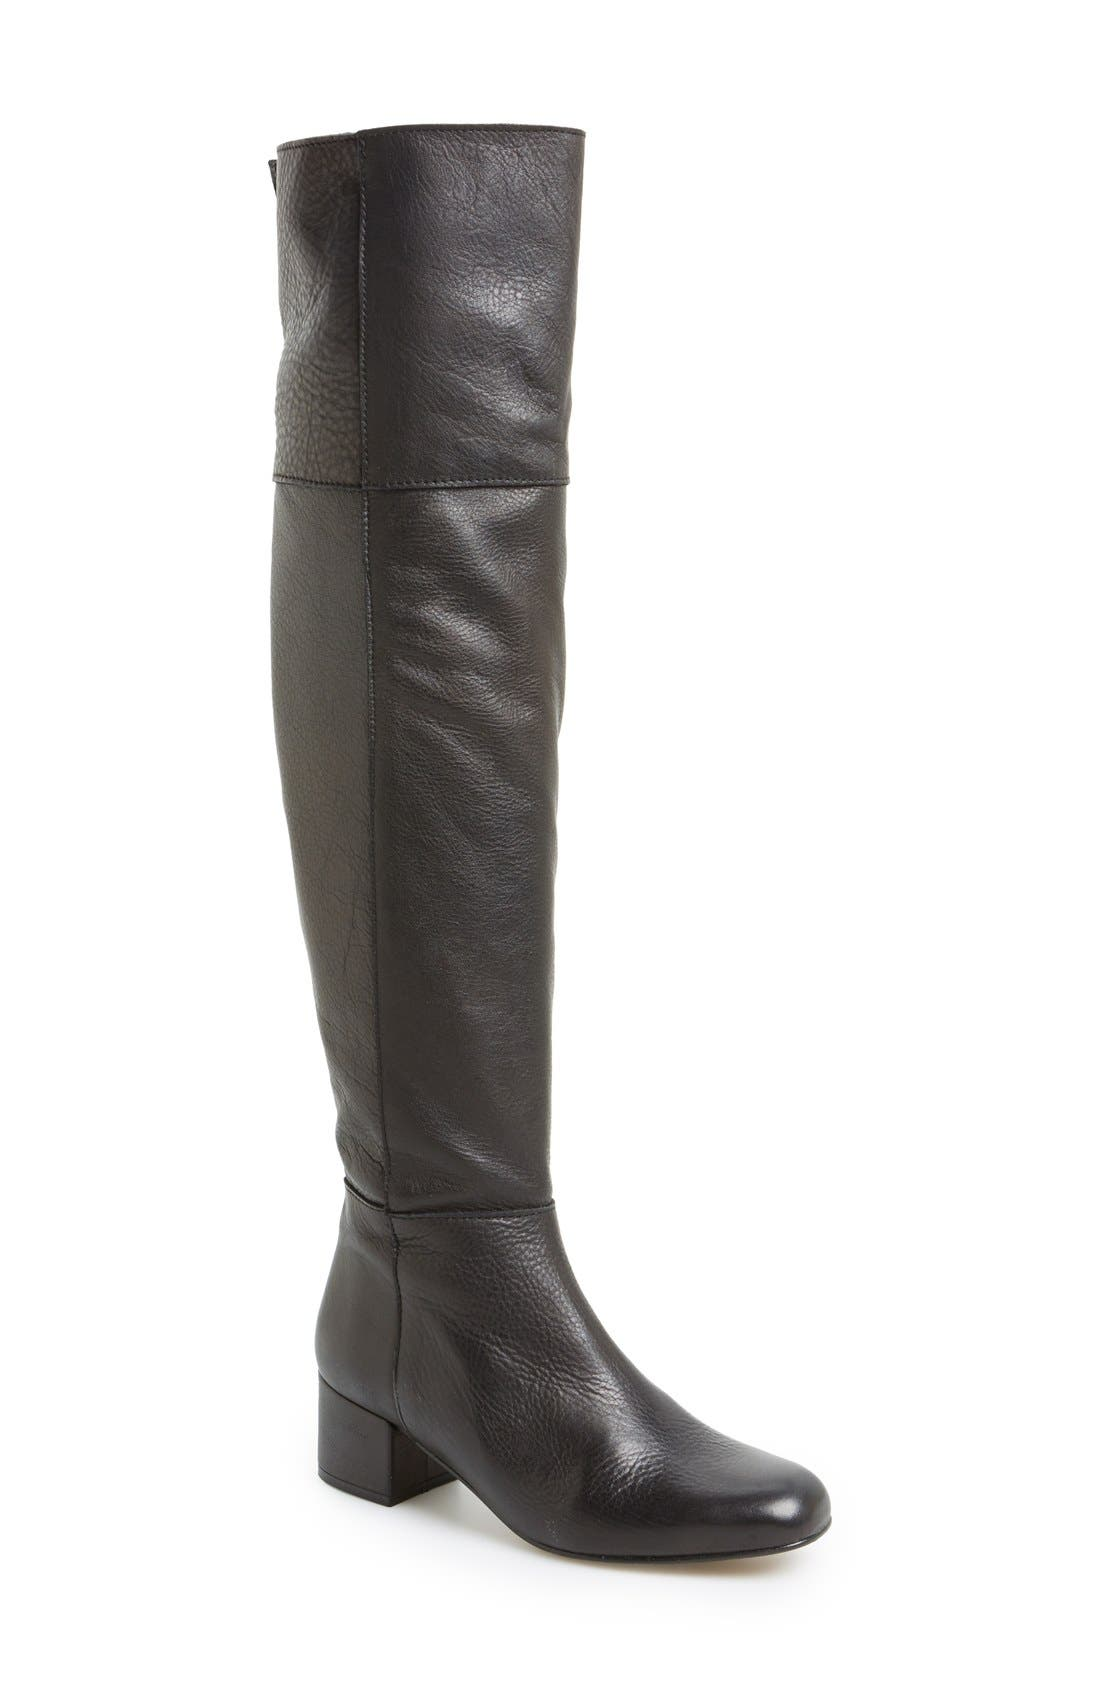 Alternate Image 1 Selected - Topshop 'Canada' Over the Knee Leather Boot (Women)